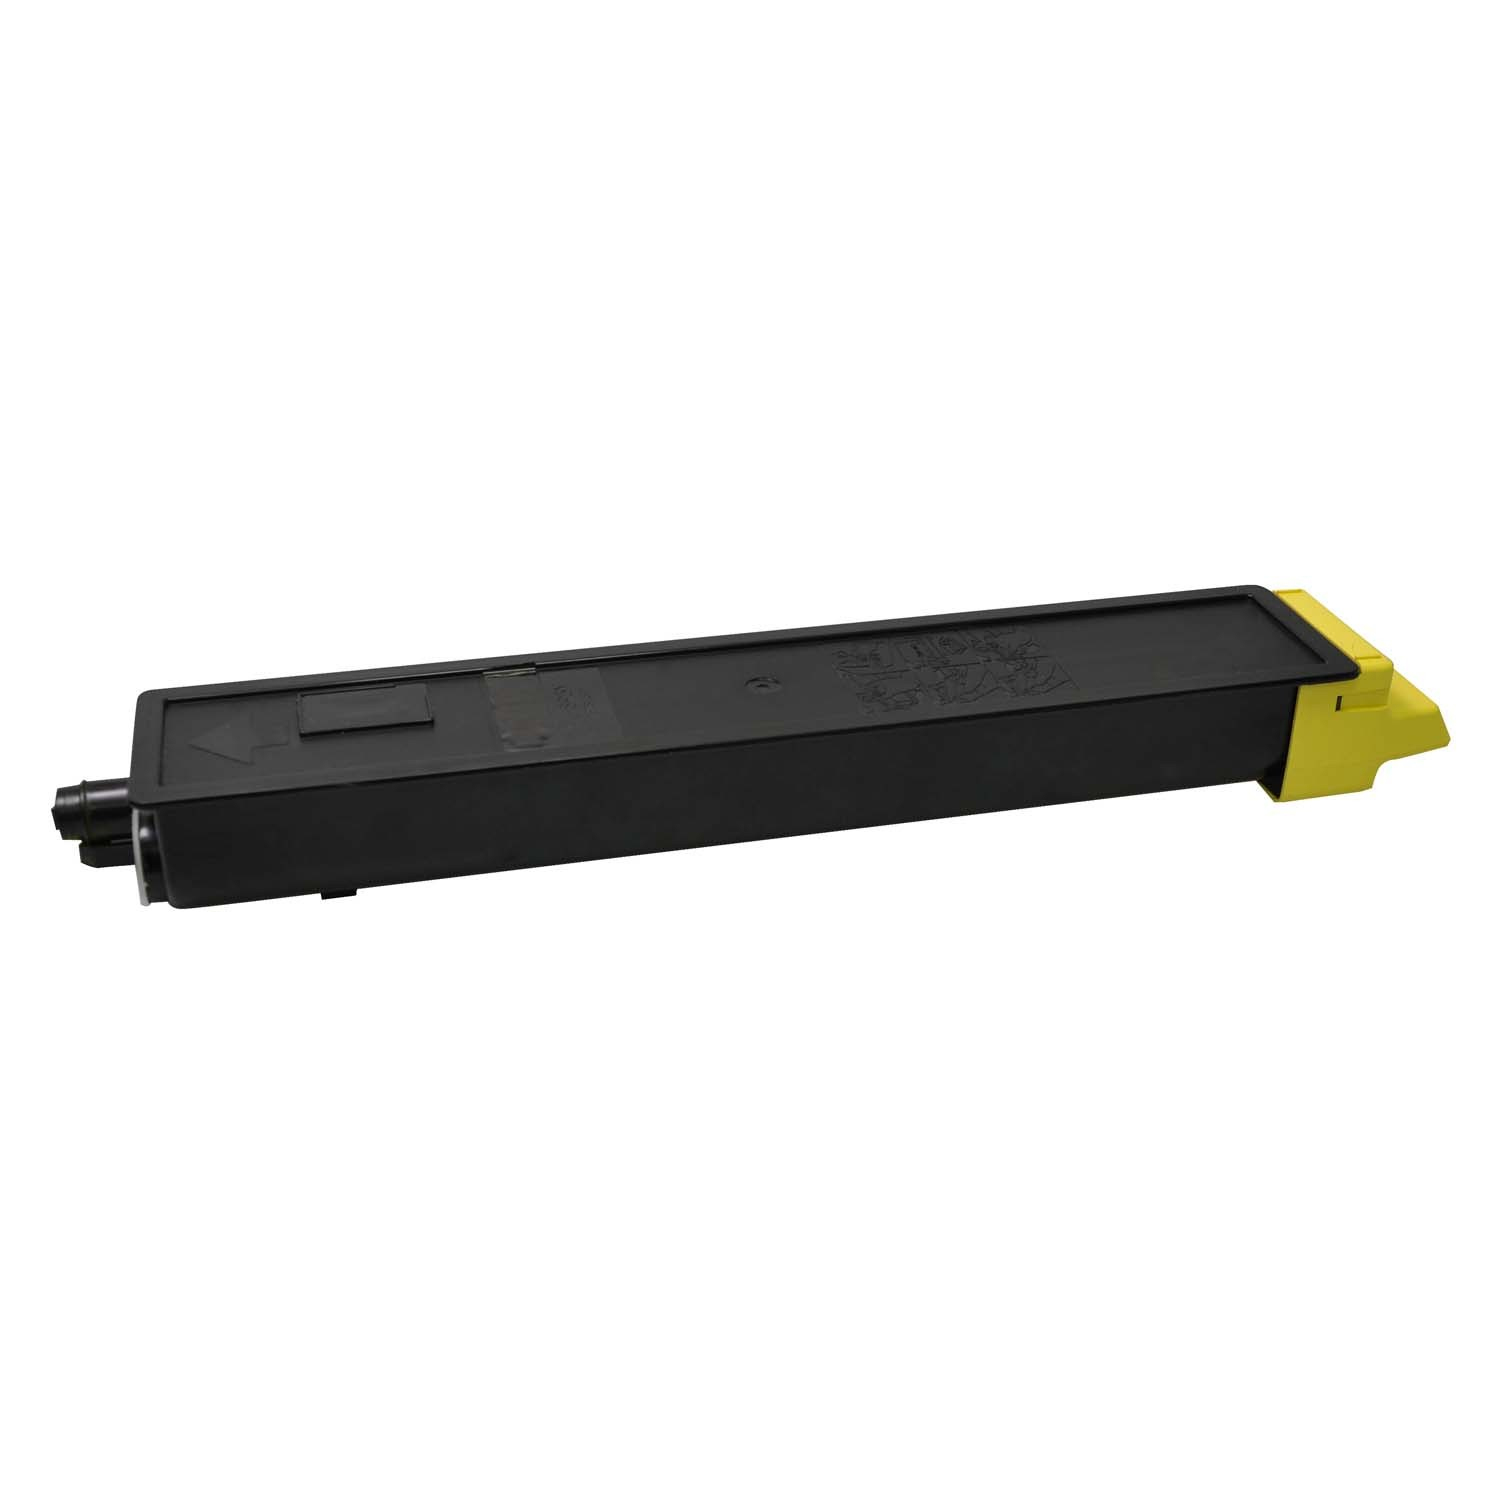 V7 Toner for select Kyocera printers - Replaces TK-895Y